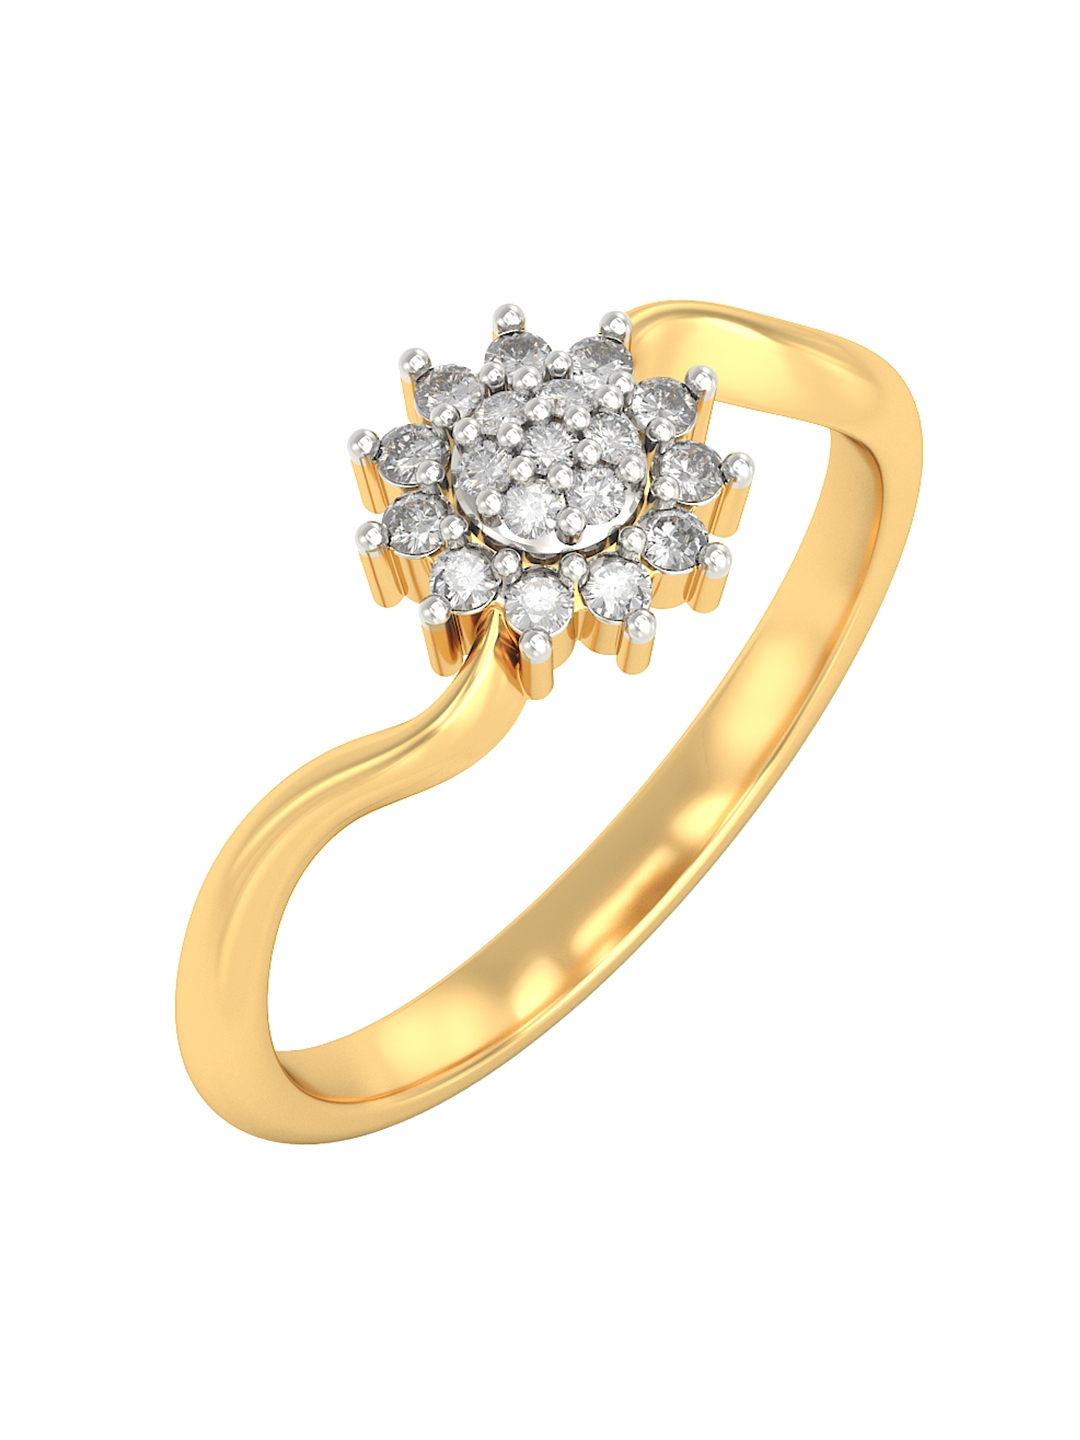 BlueStone 1.634 g 18KT Gold Radha Ring with Diamonds